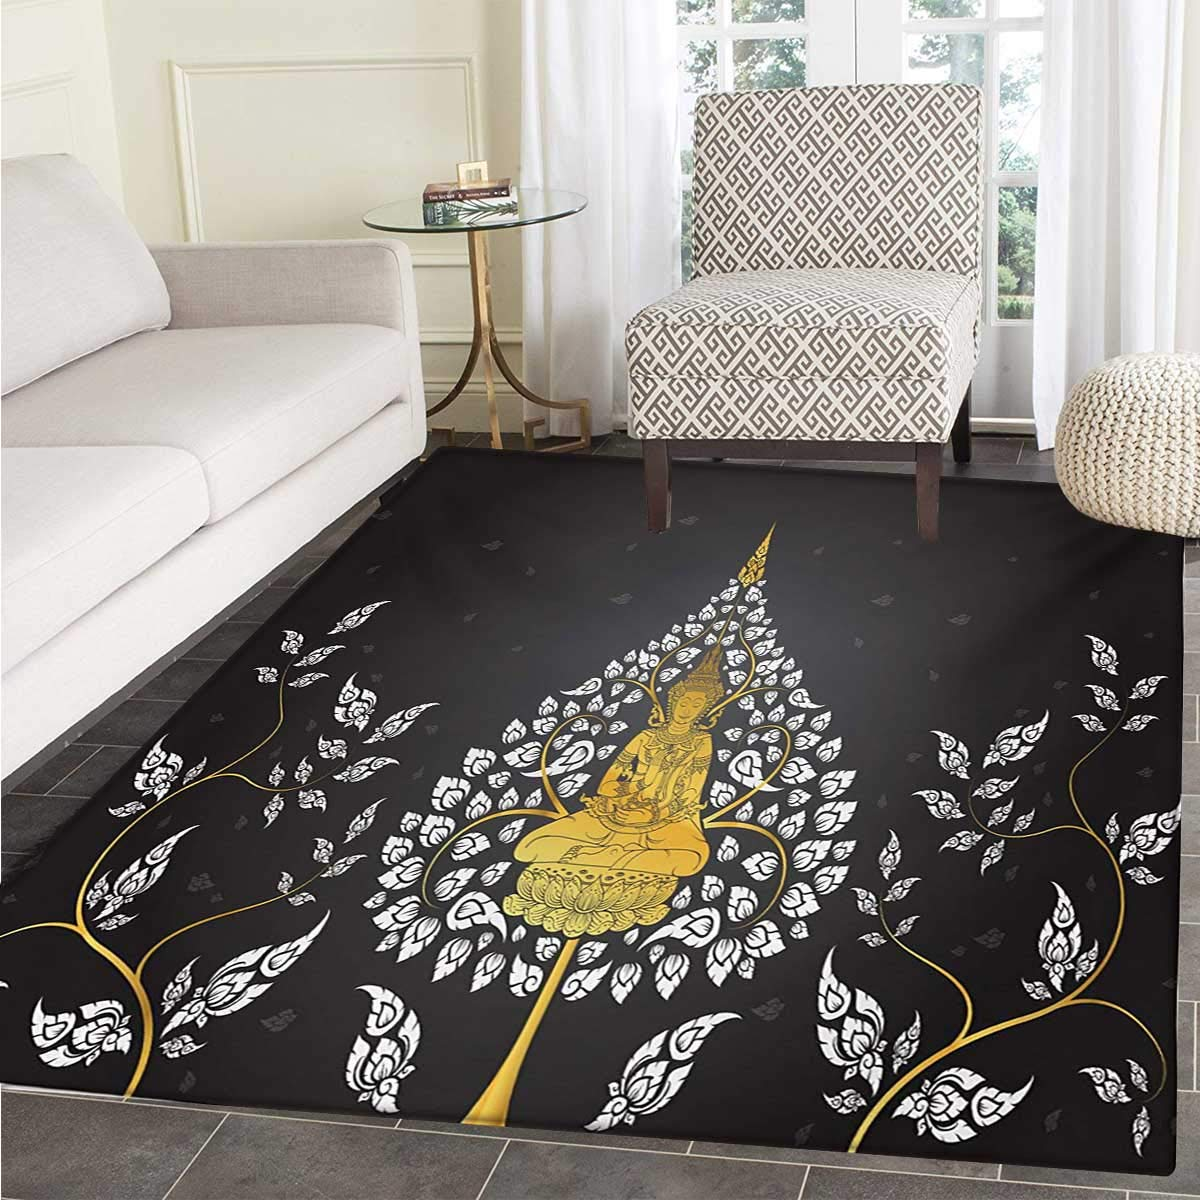 Asian Bath Mat tub Ancient Religious Thai Character Floral Elements Meditation Door Mats Inside Bathroom Mat Non Slip Backing 30''x40'' Charcoal Grey White Yellow by Anhounine